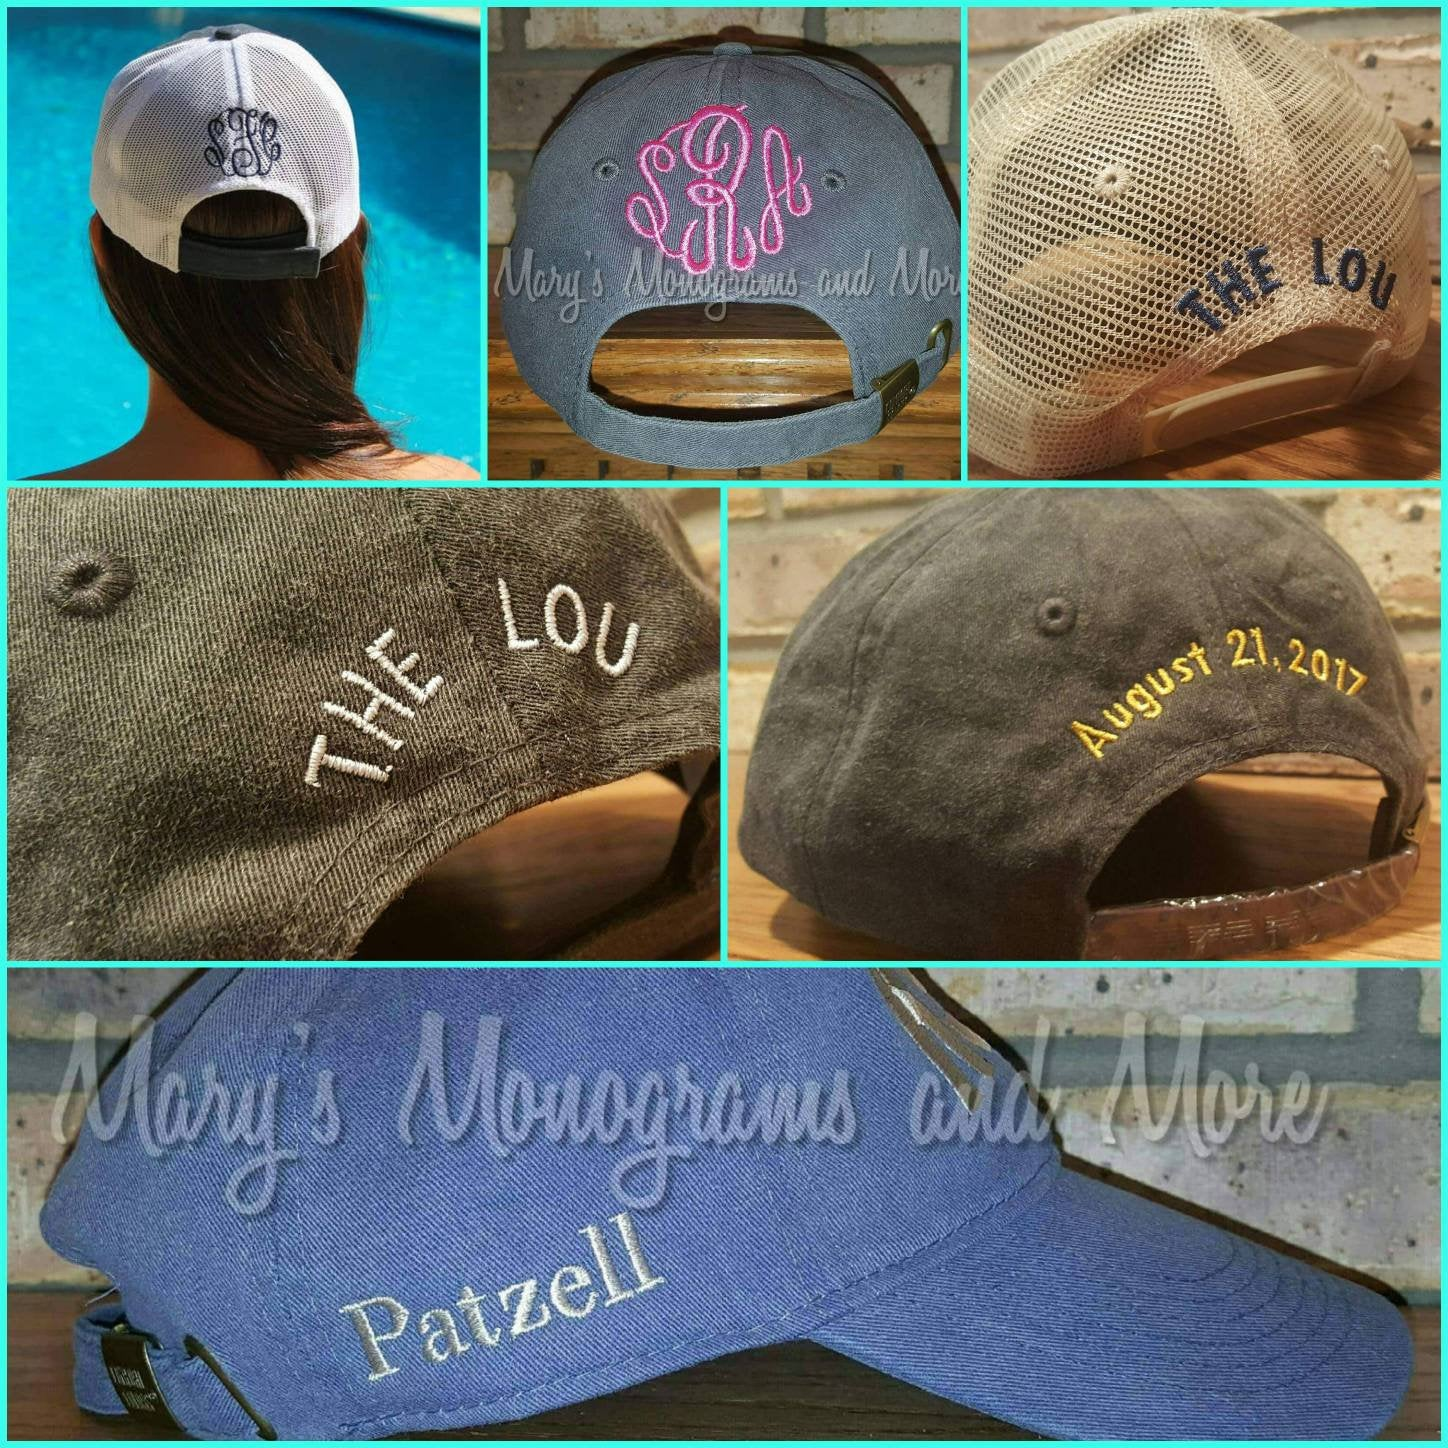 Good Vibes and High Tides Hat - Embroidered Beach, Summer Vacation, Girls Trip, I'll Bring The Alcohol, Bad Decisions, Drinking, Party Hat